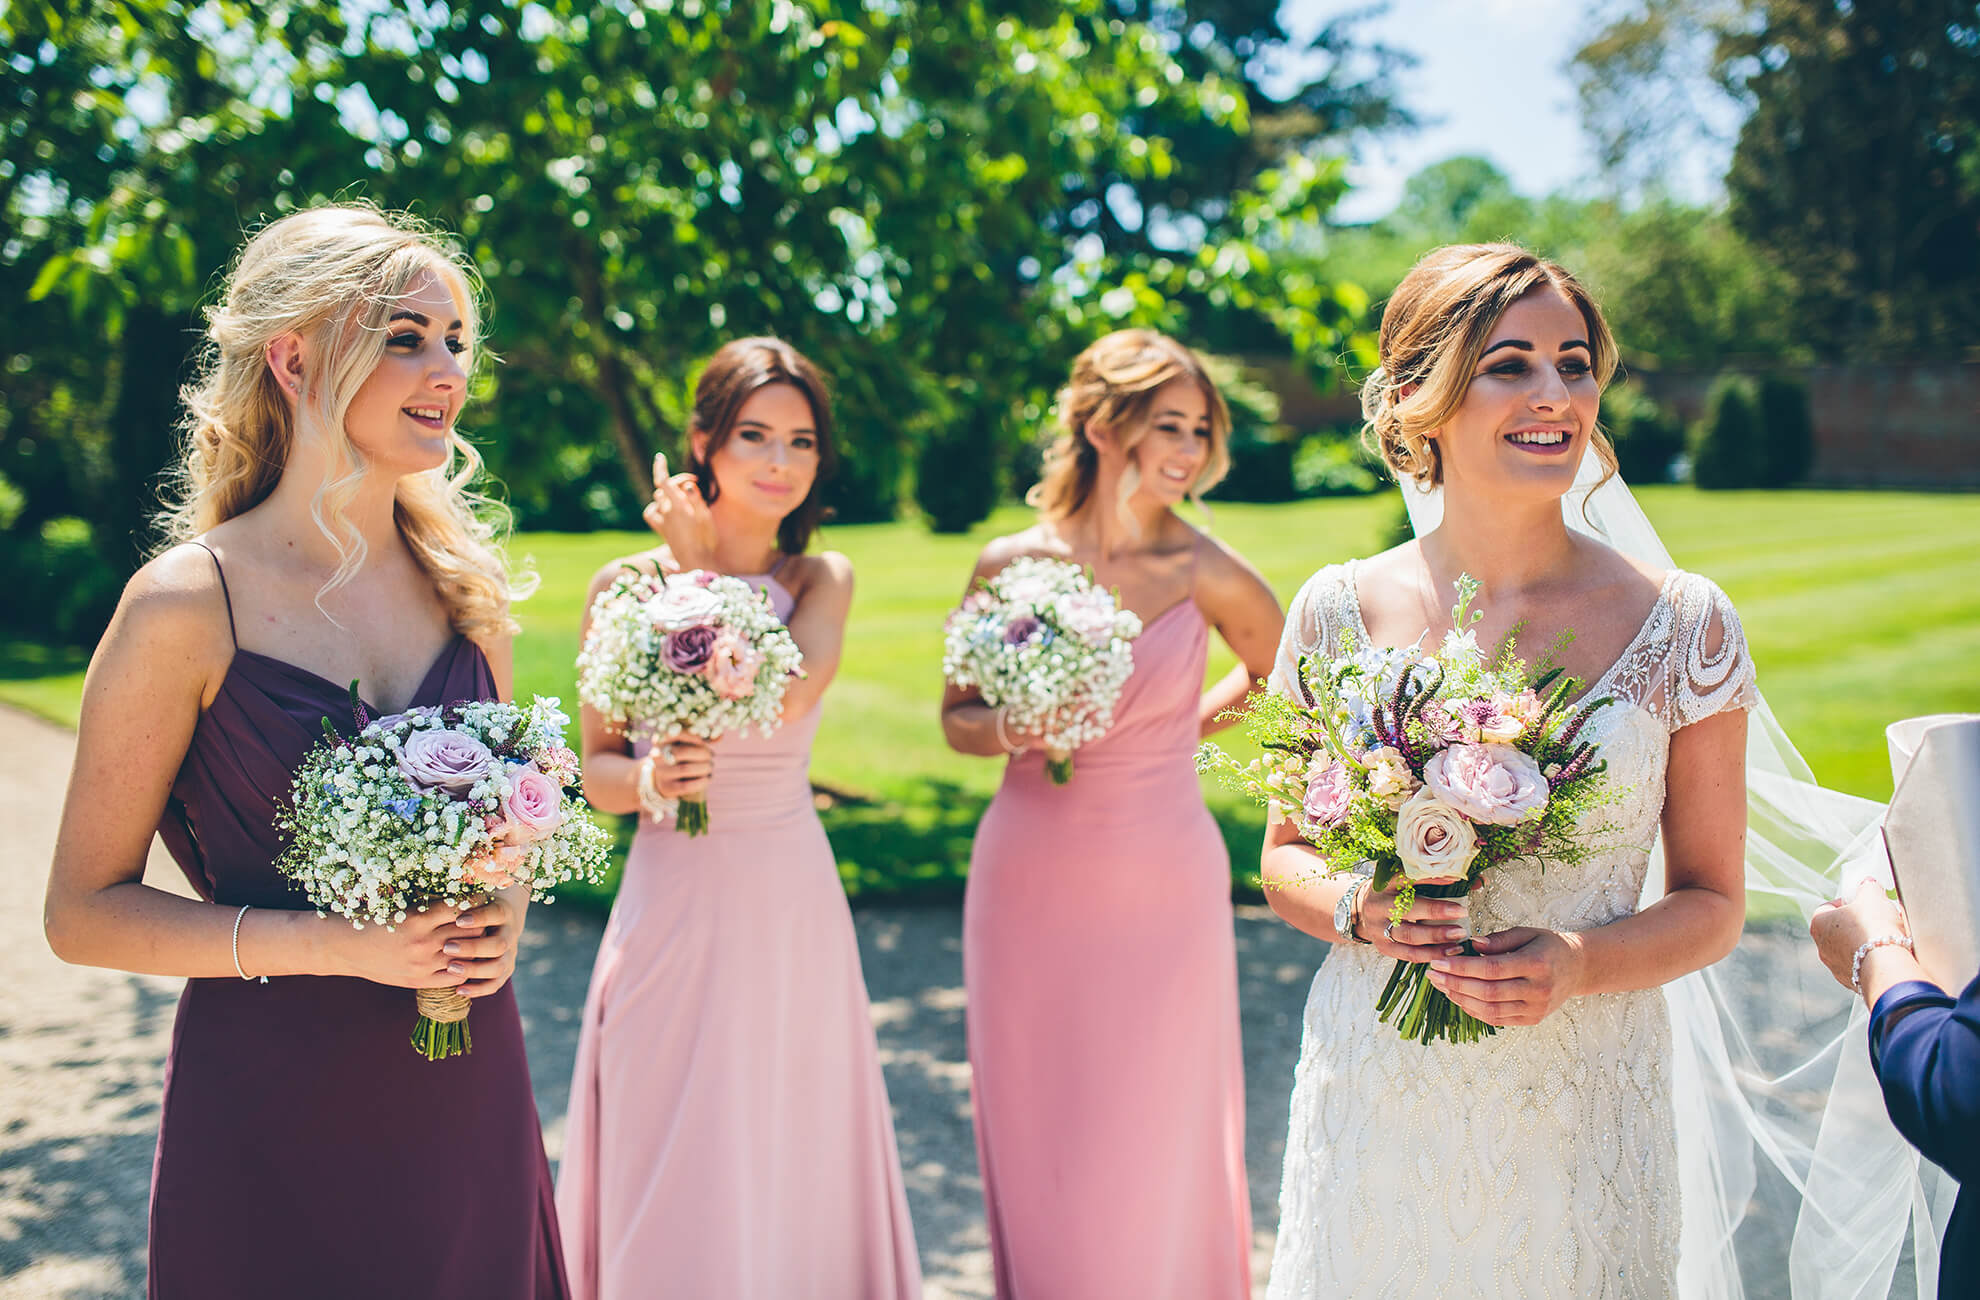 Bridesmaids are dressed in shades of pink and purple for an elegant wedding at Combermere Abbey – wedding ideas